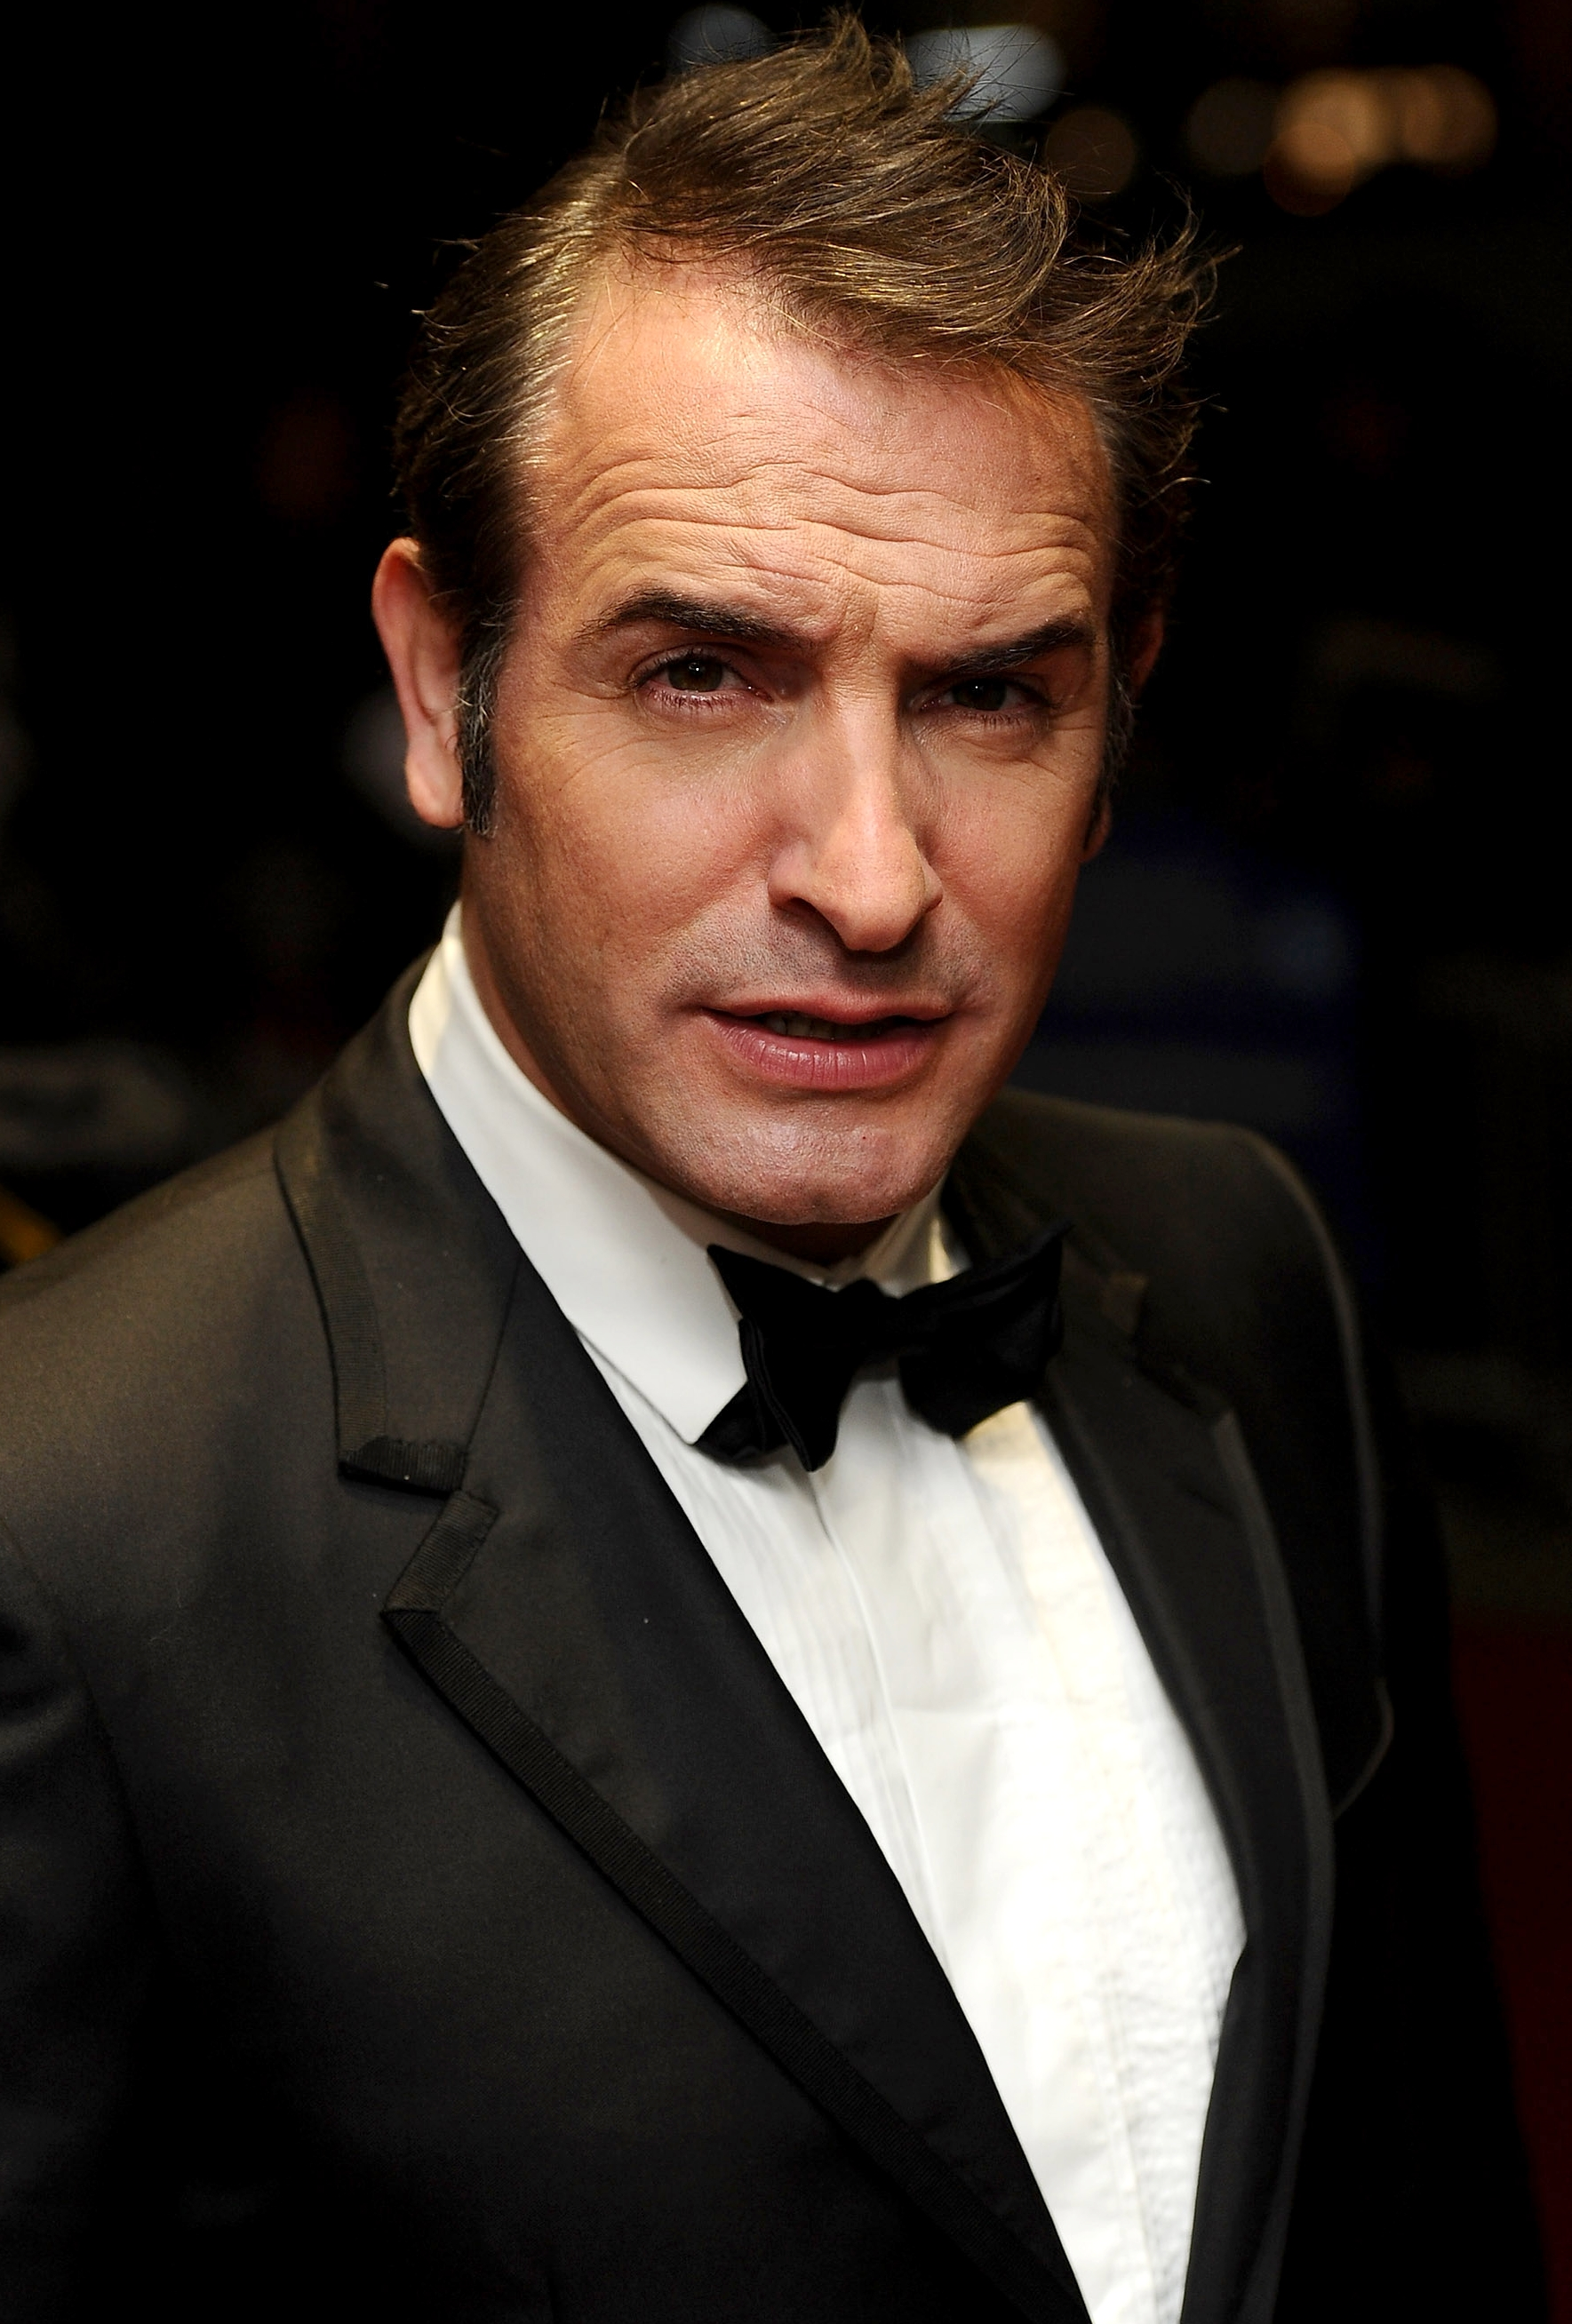 Jean dujardin actor for Jean dujardin photo